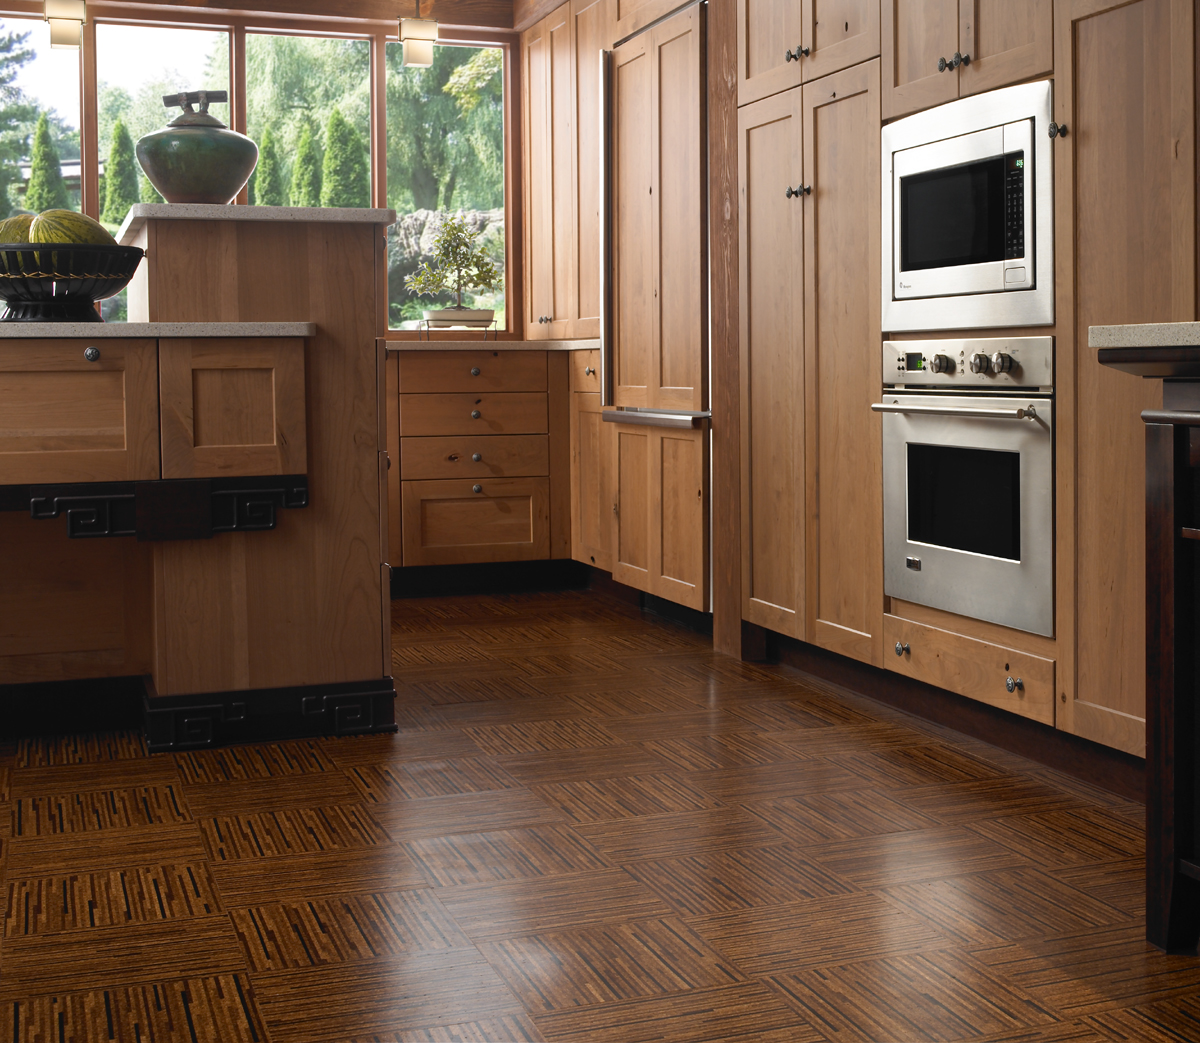 Flooring Options Kitchen Vinyl Kitchen Flooring Options All About Flooring Designs